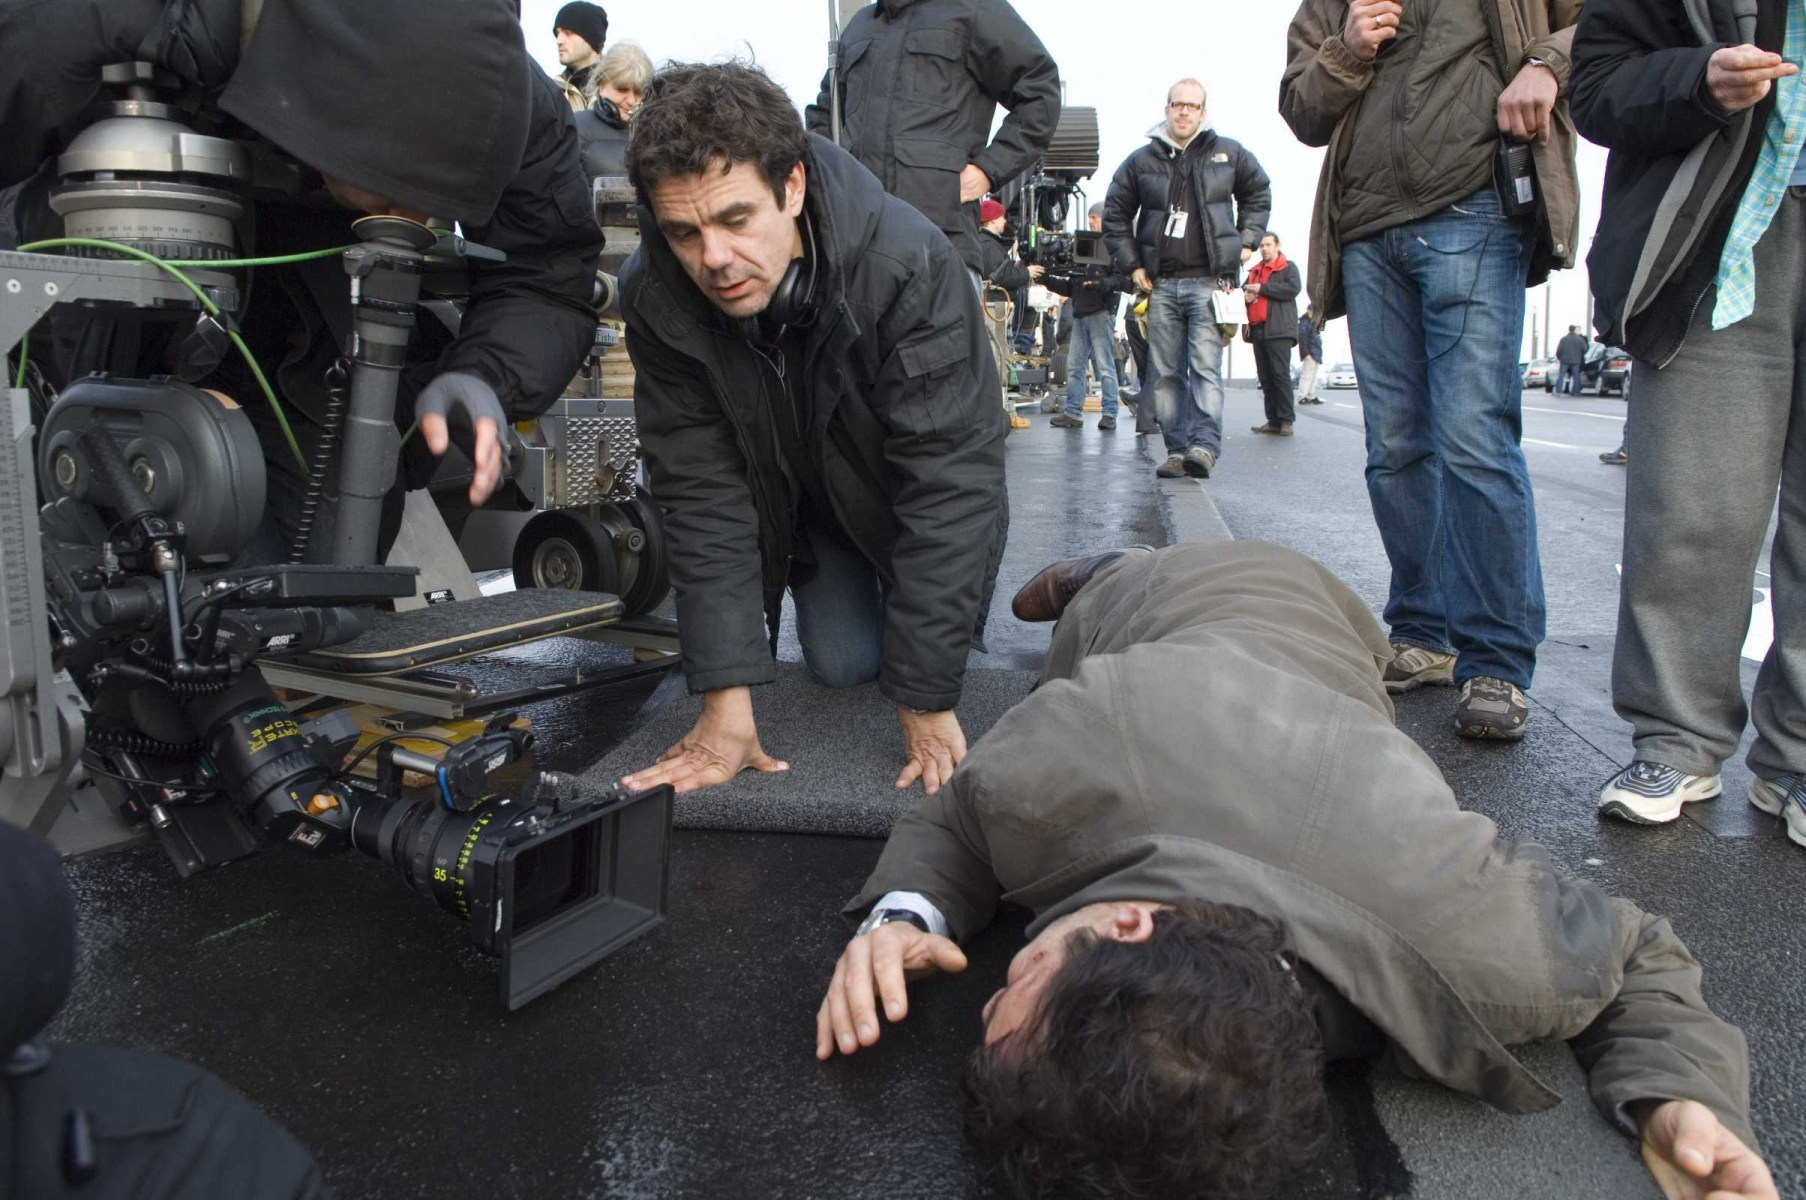 Filming The International (2009) Behind the Scenes